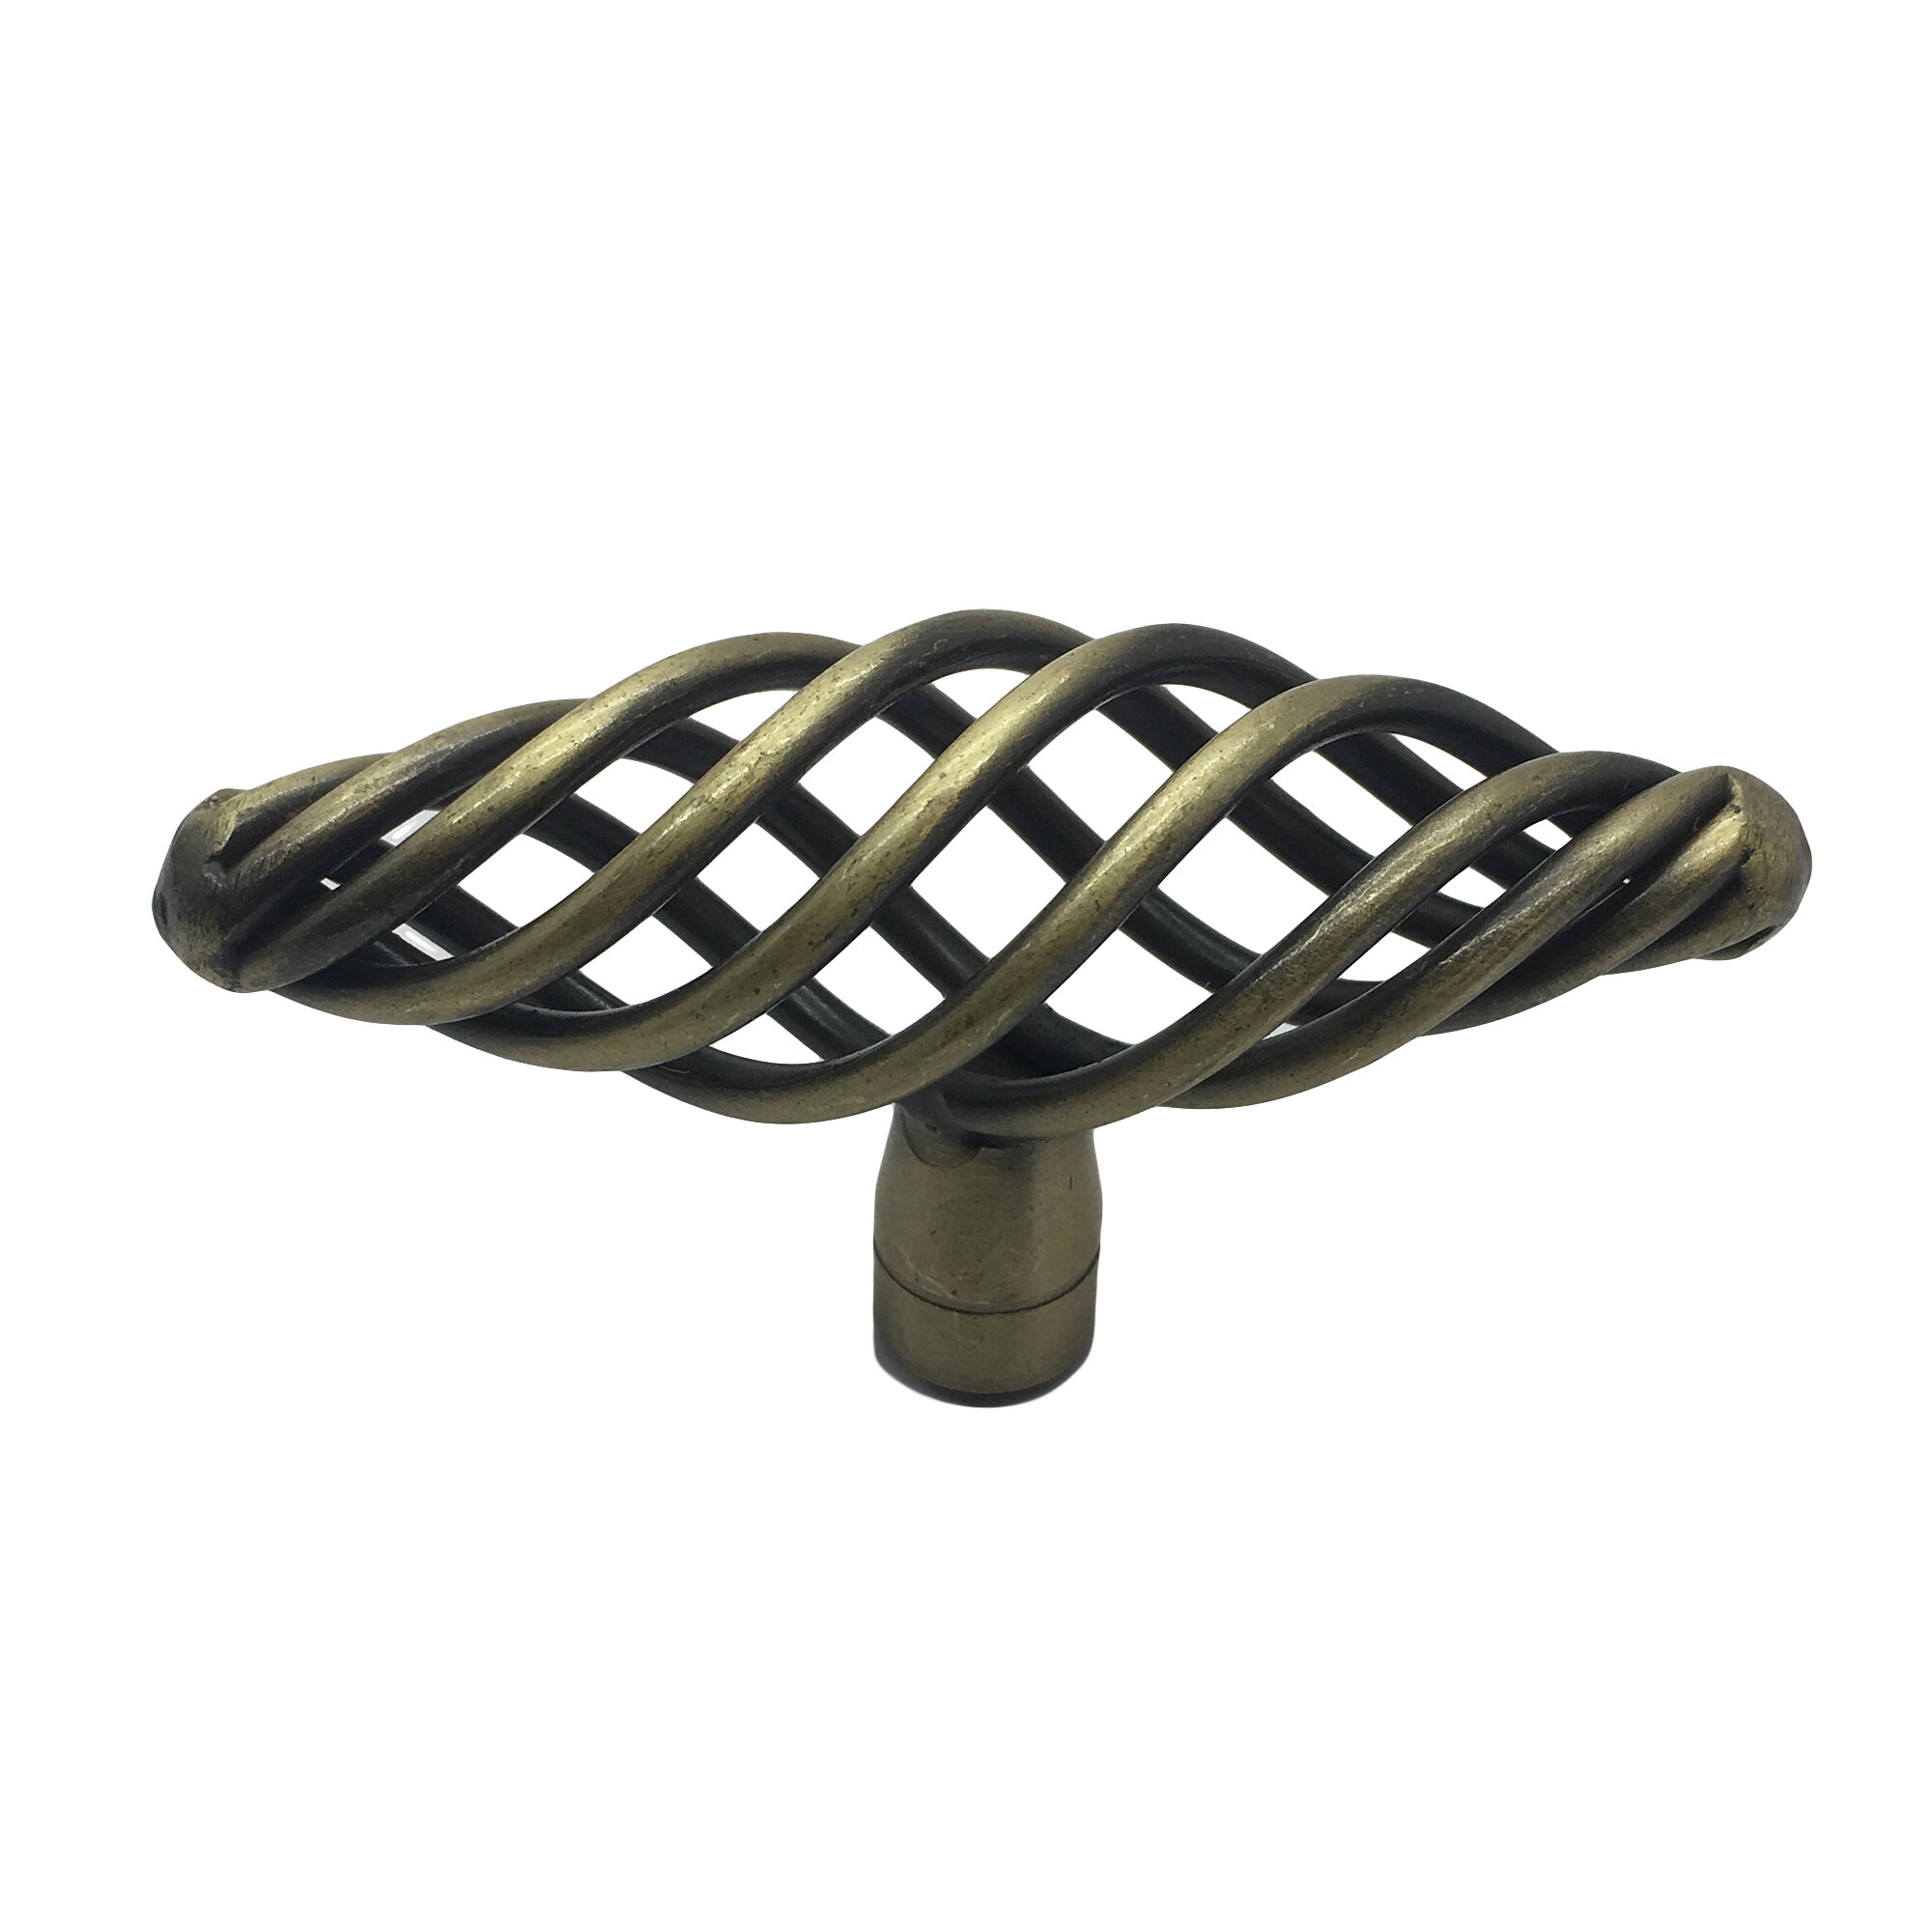 Birdcage Cabinet Drawer Pulls You Ll Love In 2021 Wayfair